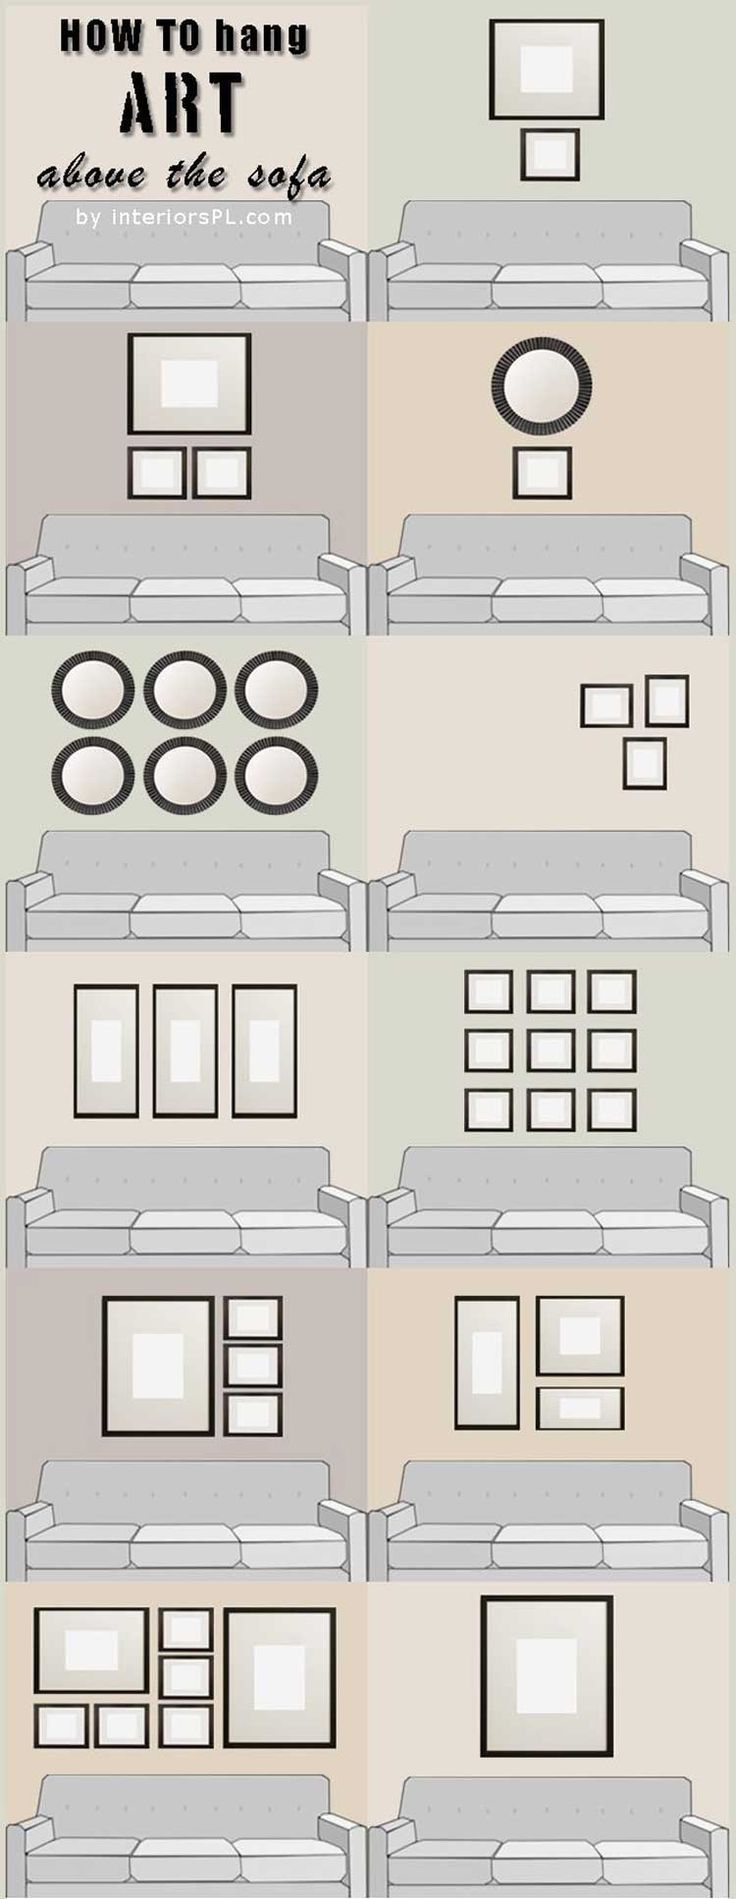 Bedroom wall decoration ideas pinterest - Ispirazione Wall Gallery Come Riempire Le Pareti Interiordesign Home Decor